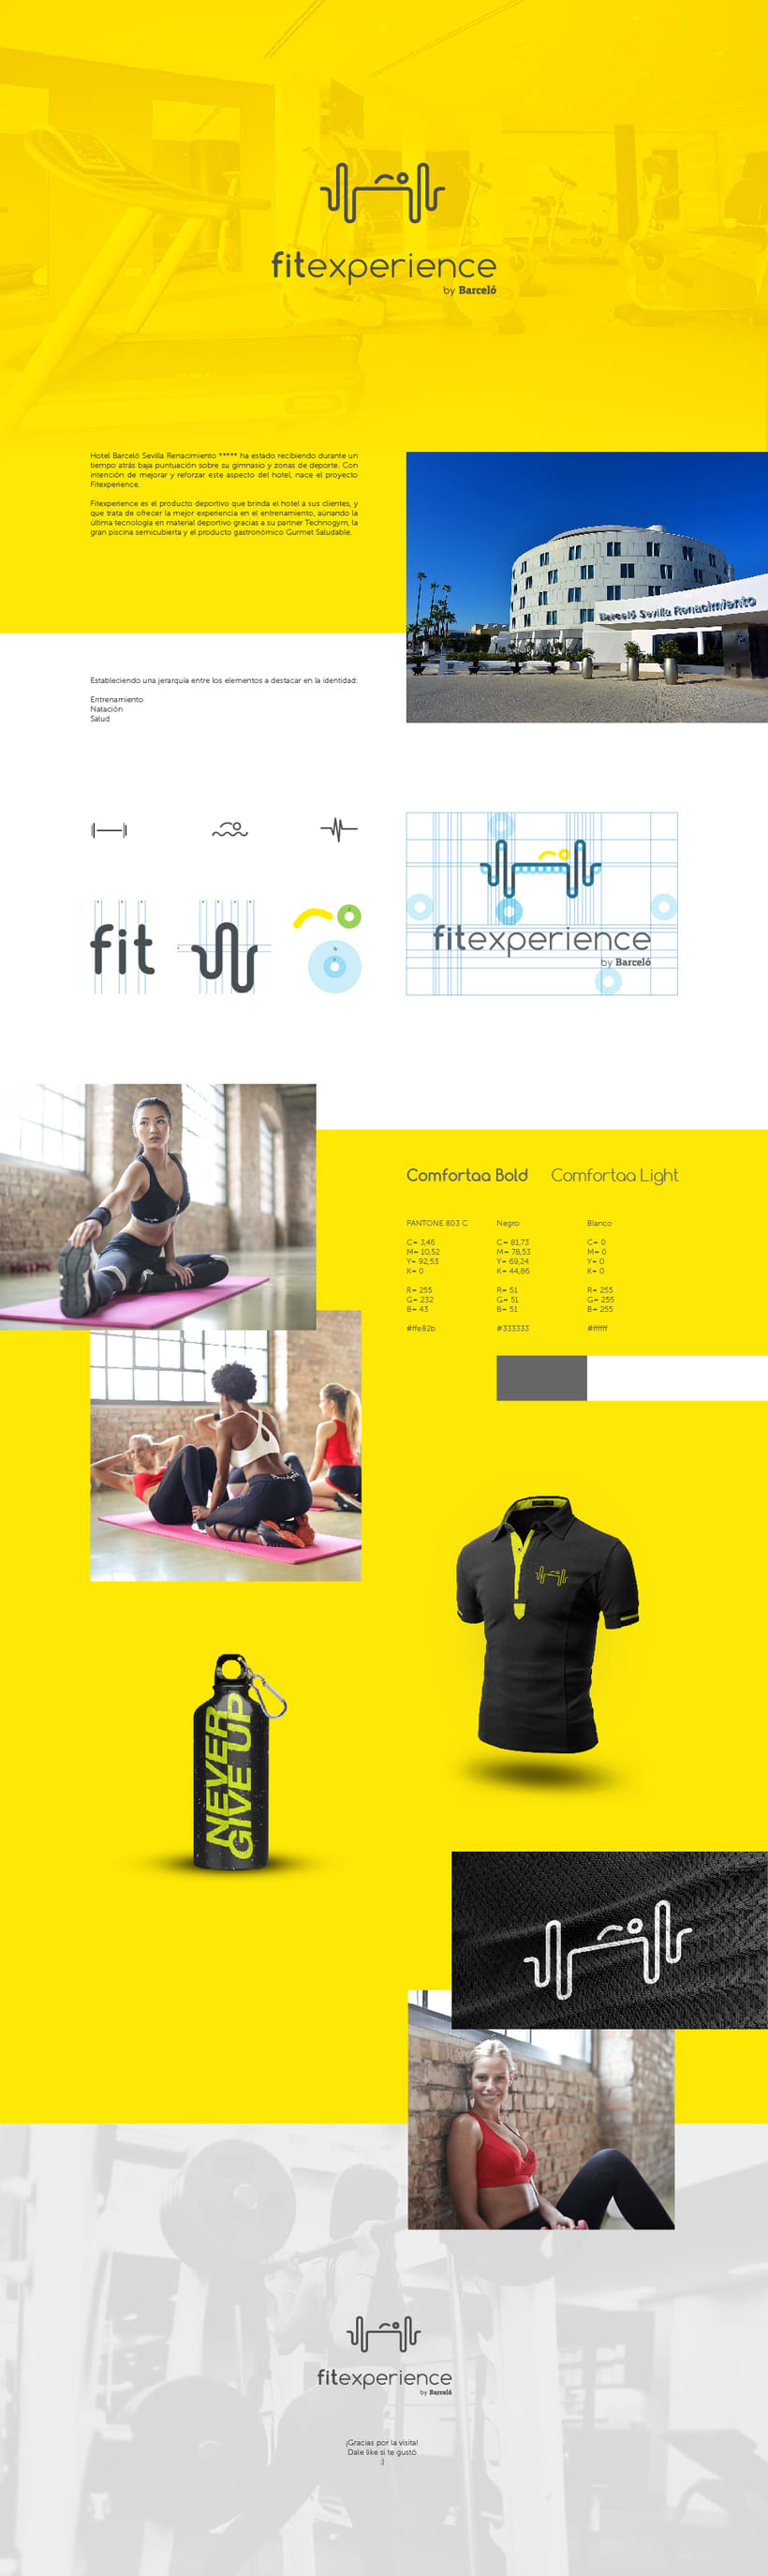 Fitexperience -1